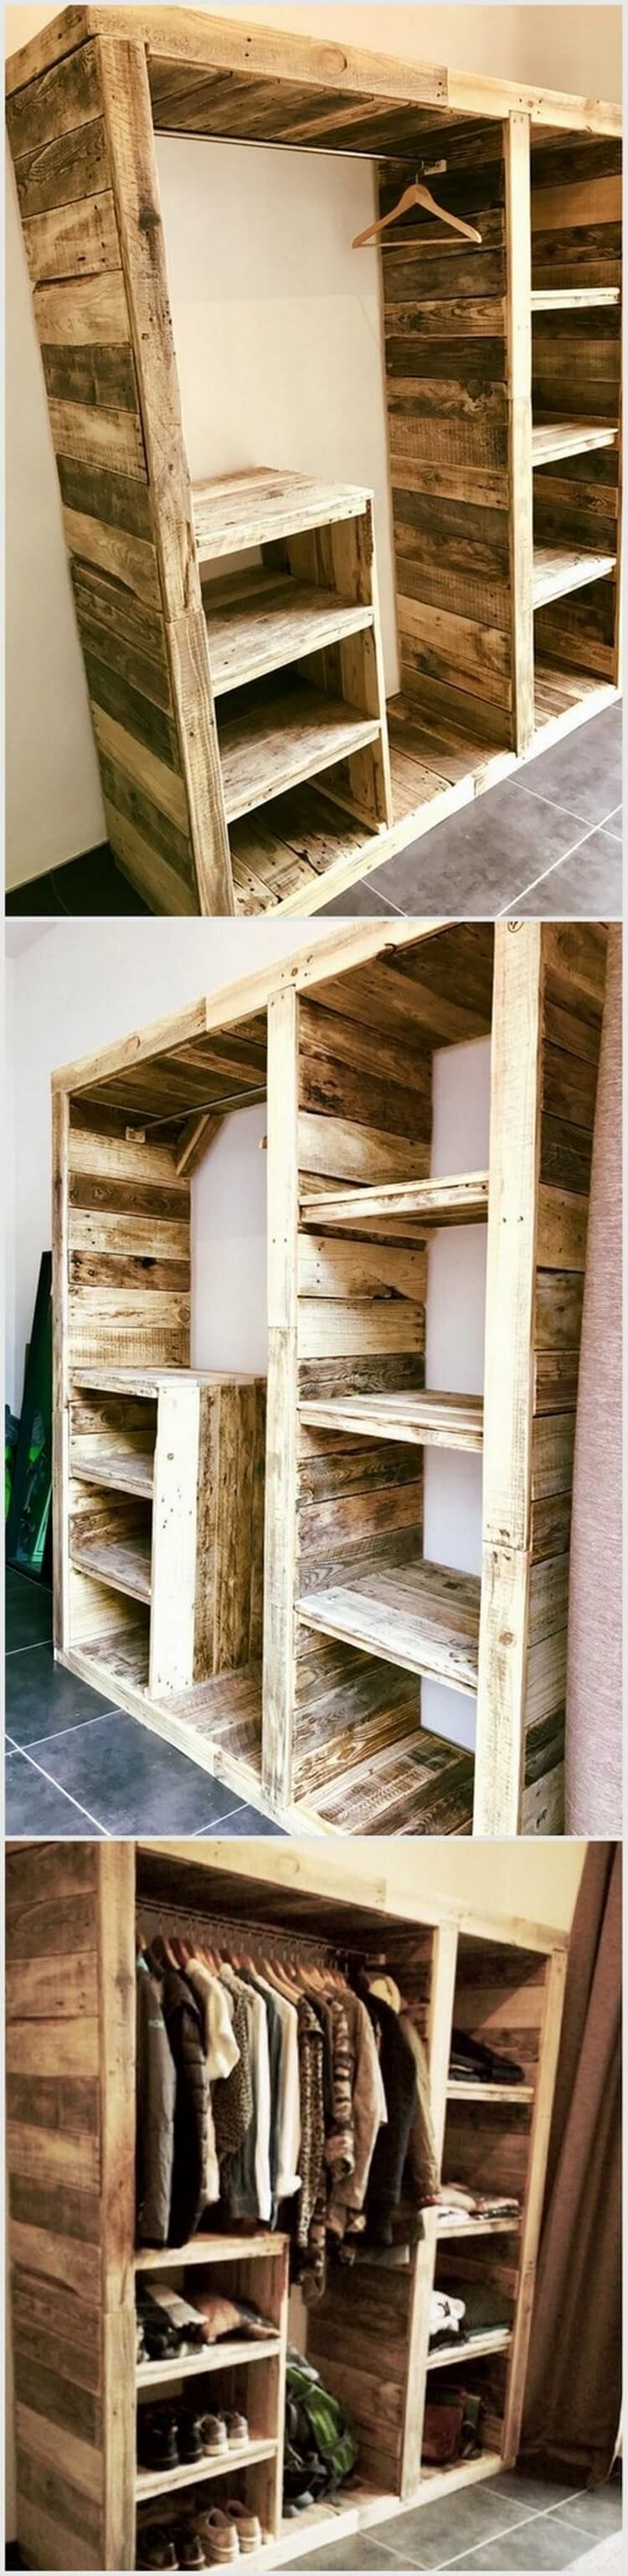 Shocking Recycling Ideas for Shipping Wood Pallets | Pallet wardrobe ...